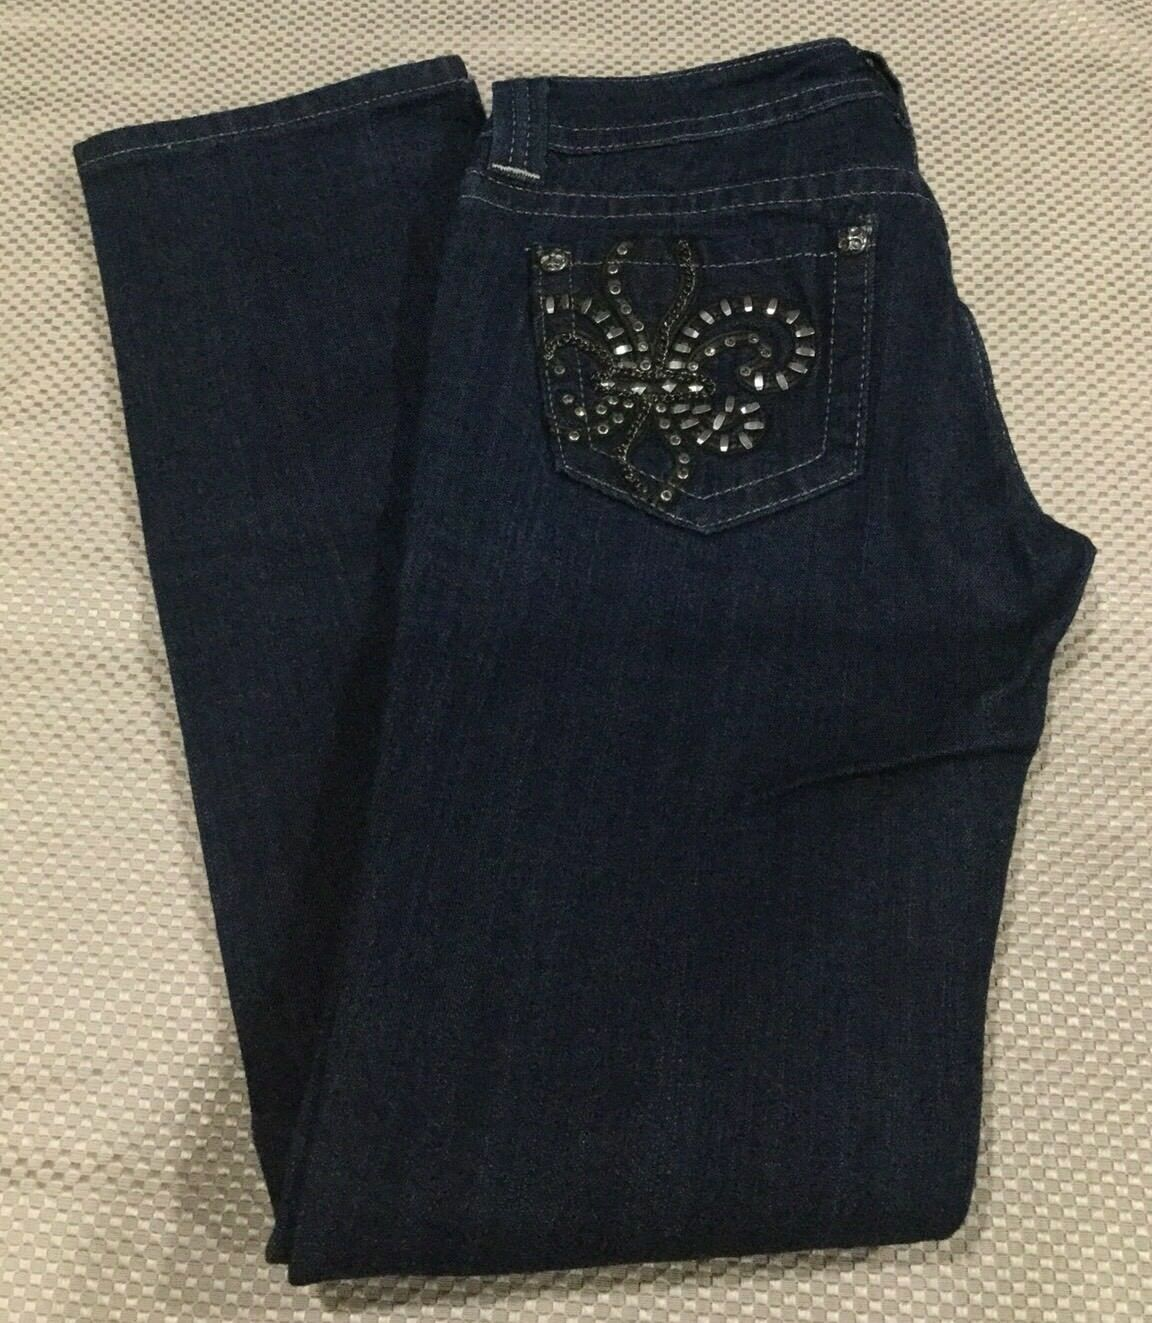 NWT Women's Miss Me Jeans Straight Size 28, Super Cute Jeans